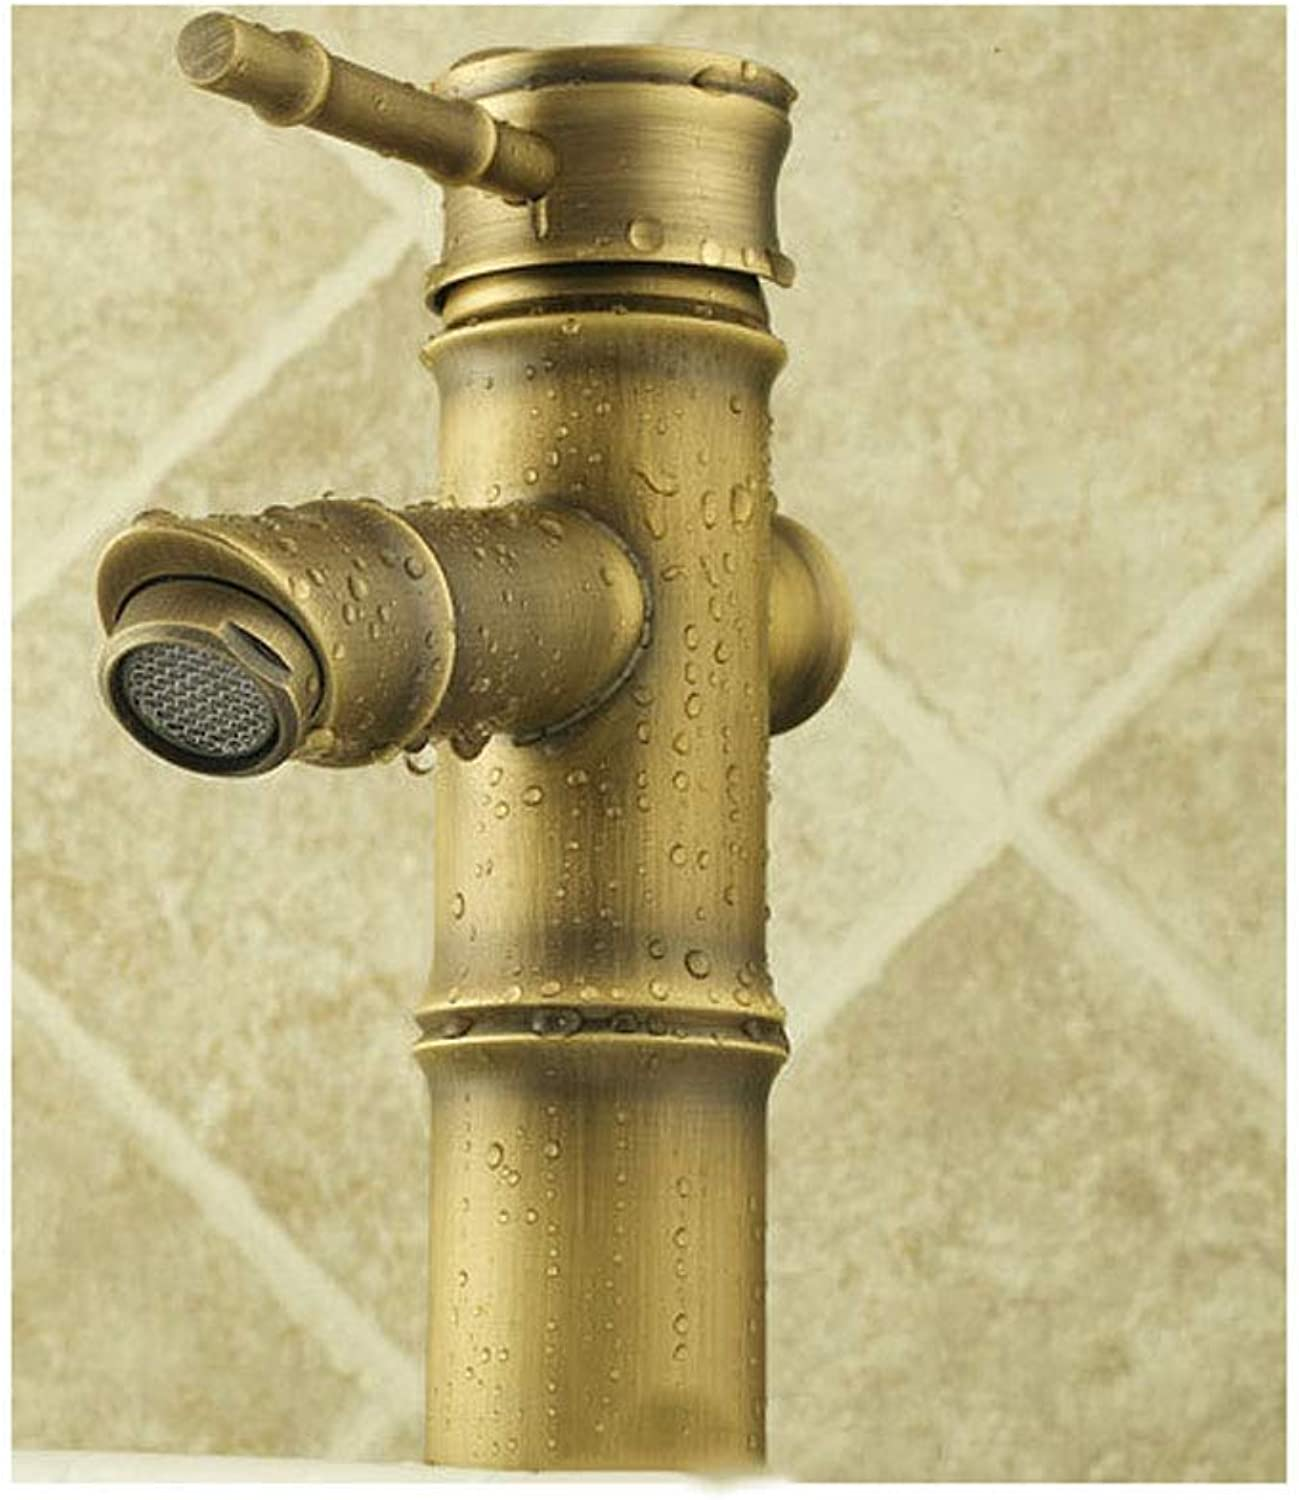 ZJJ& taps, Above counter basin taps, Hot and cold water taps, Can be adjusted to adjust the height